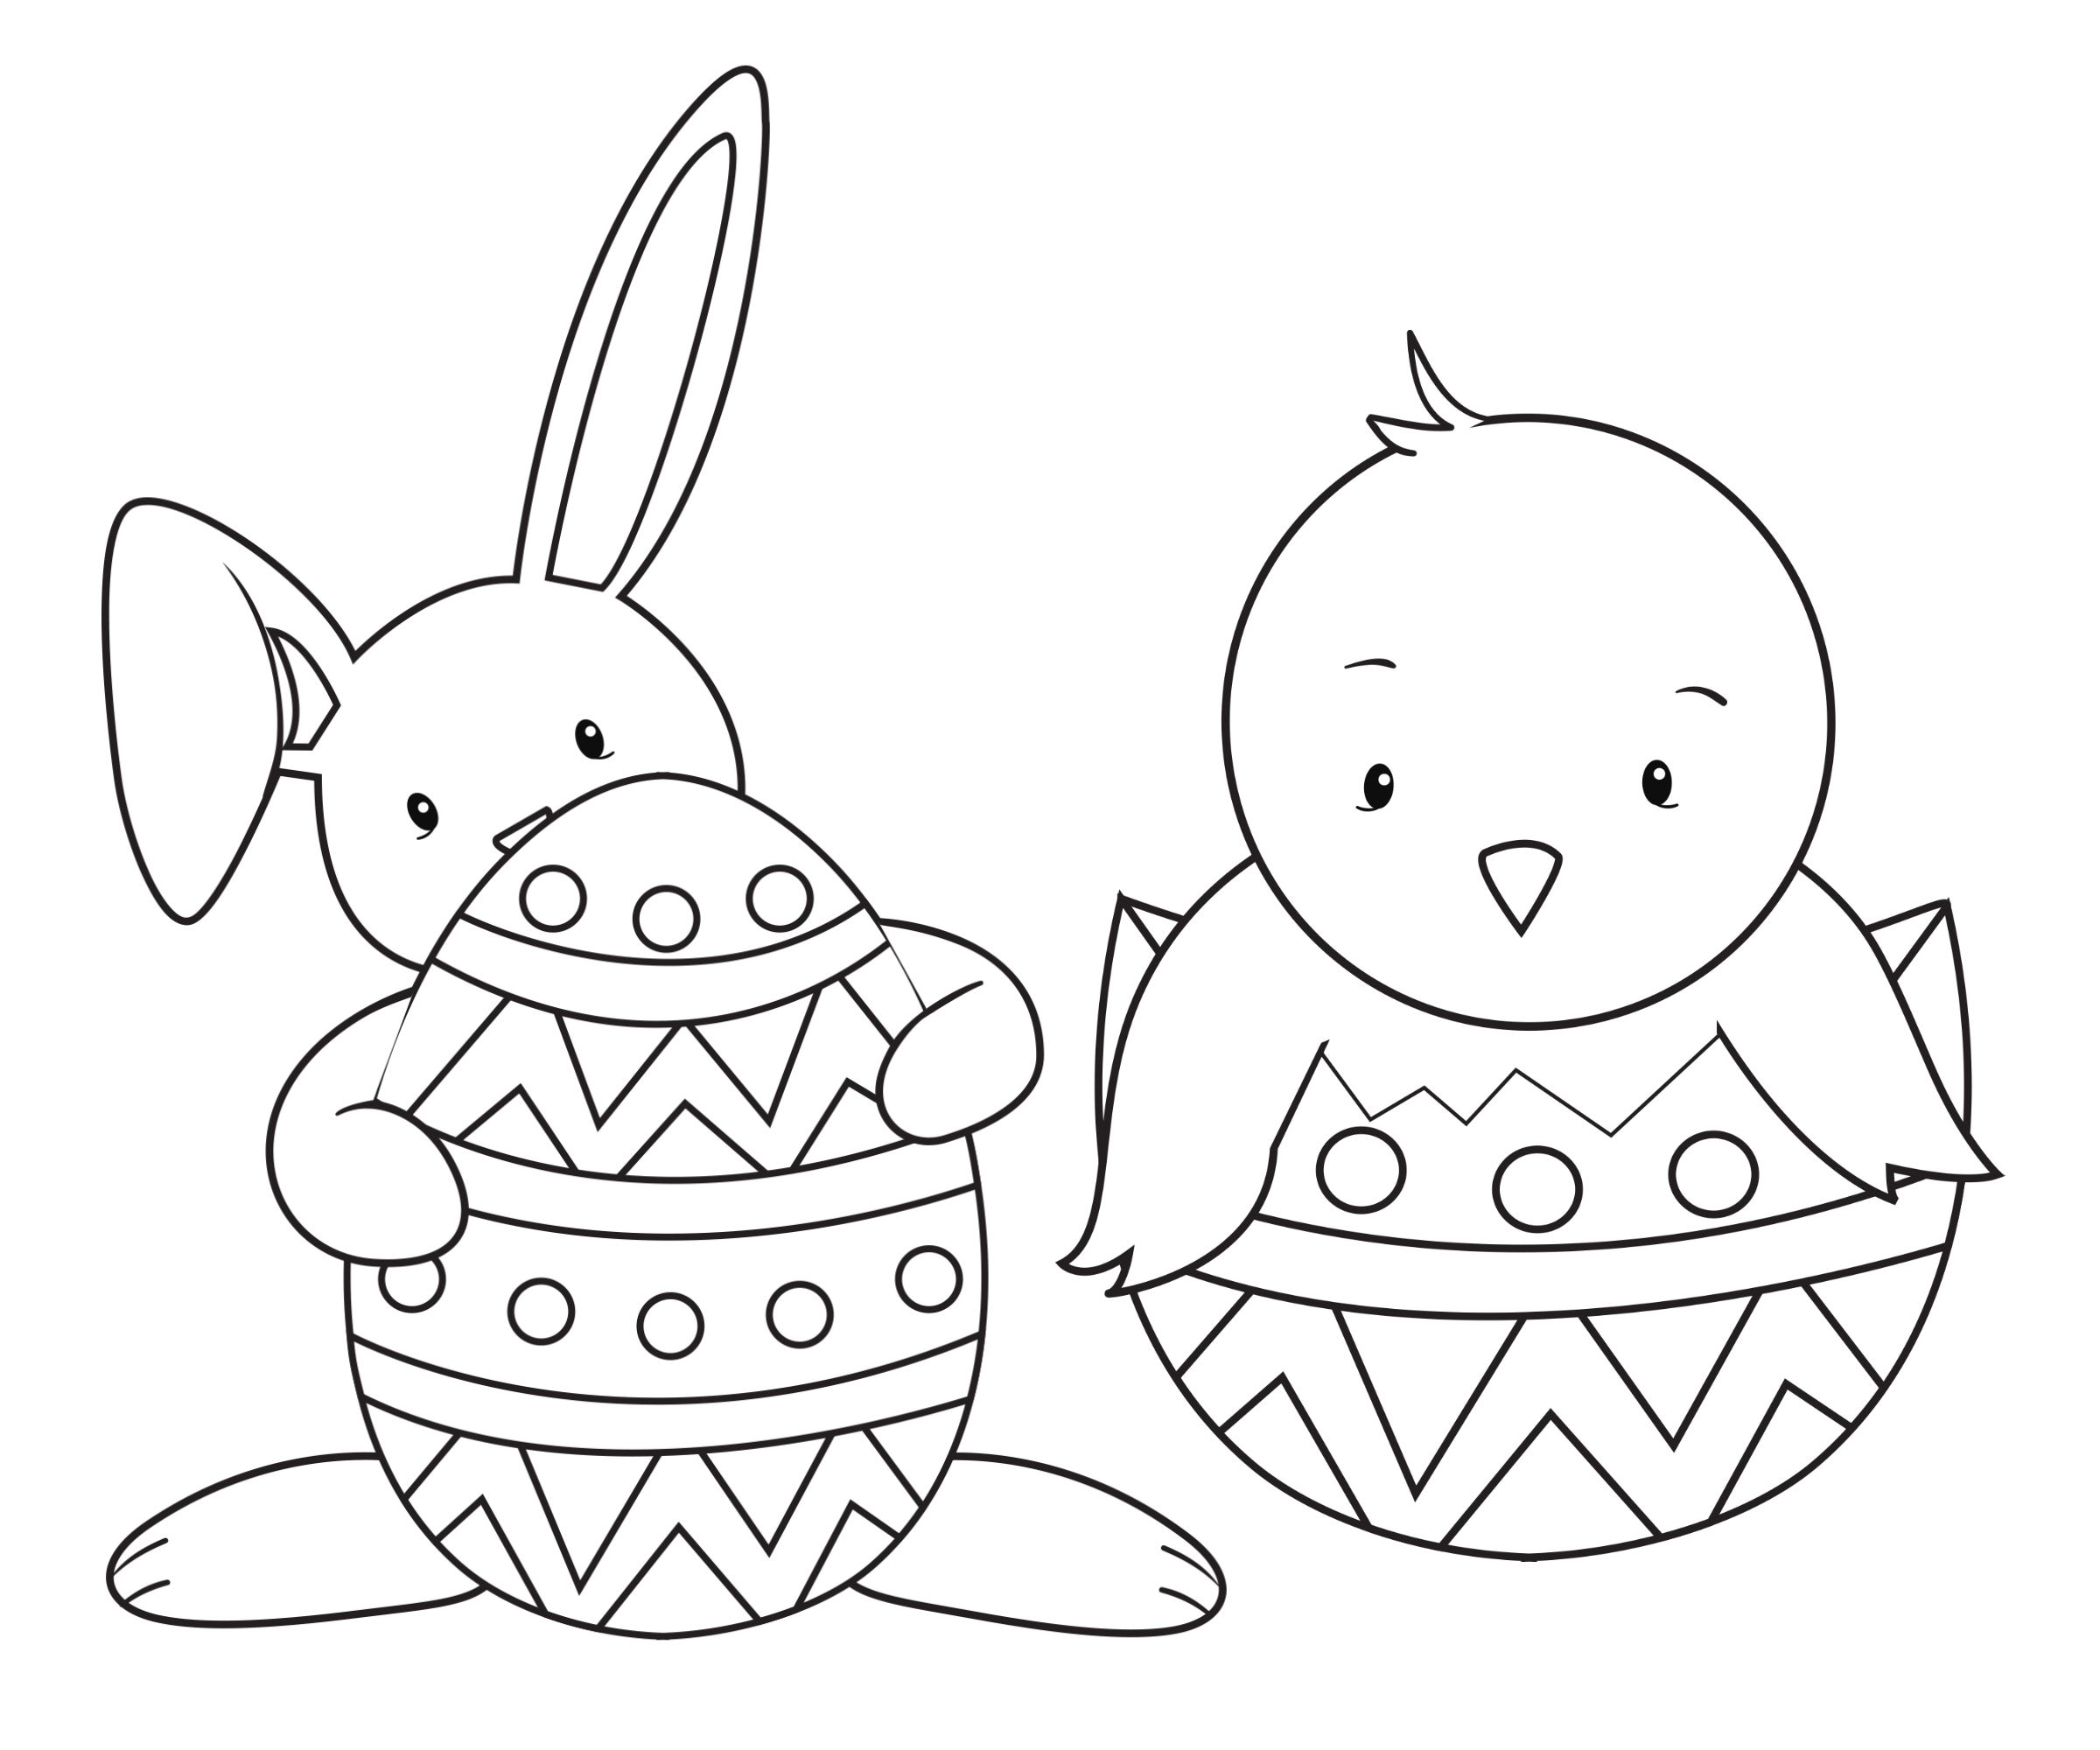 Easter Coloring Pages for Kids  Easter coloring sheets, Bunny